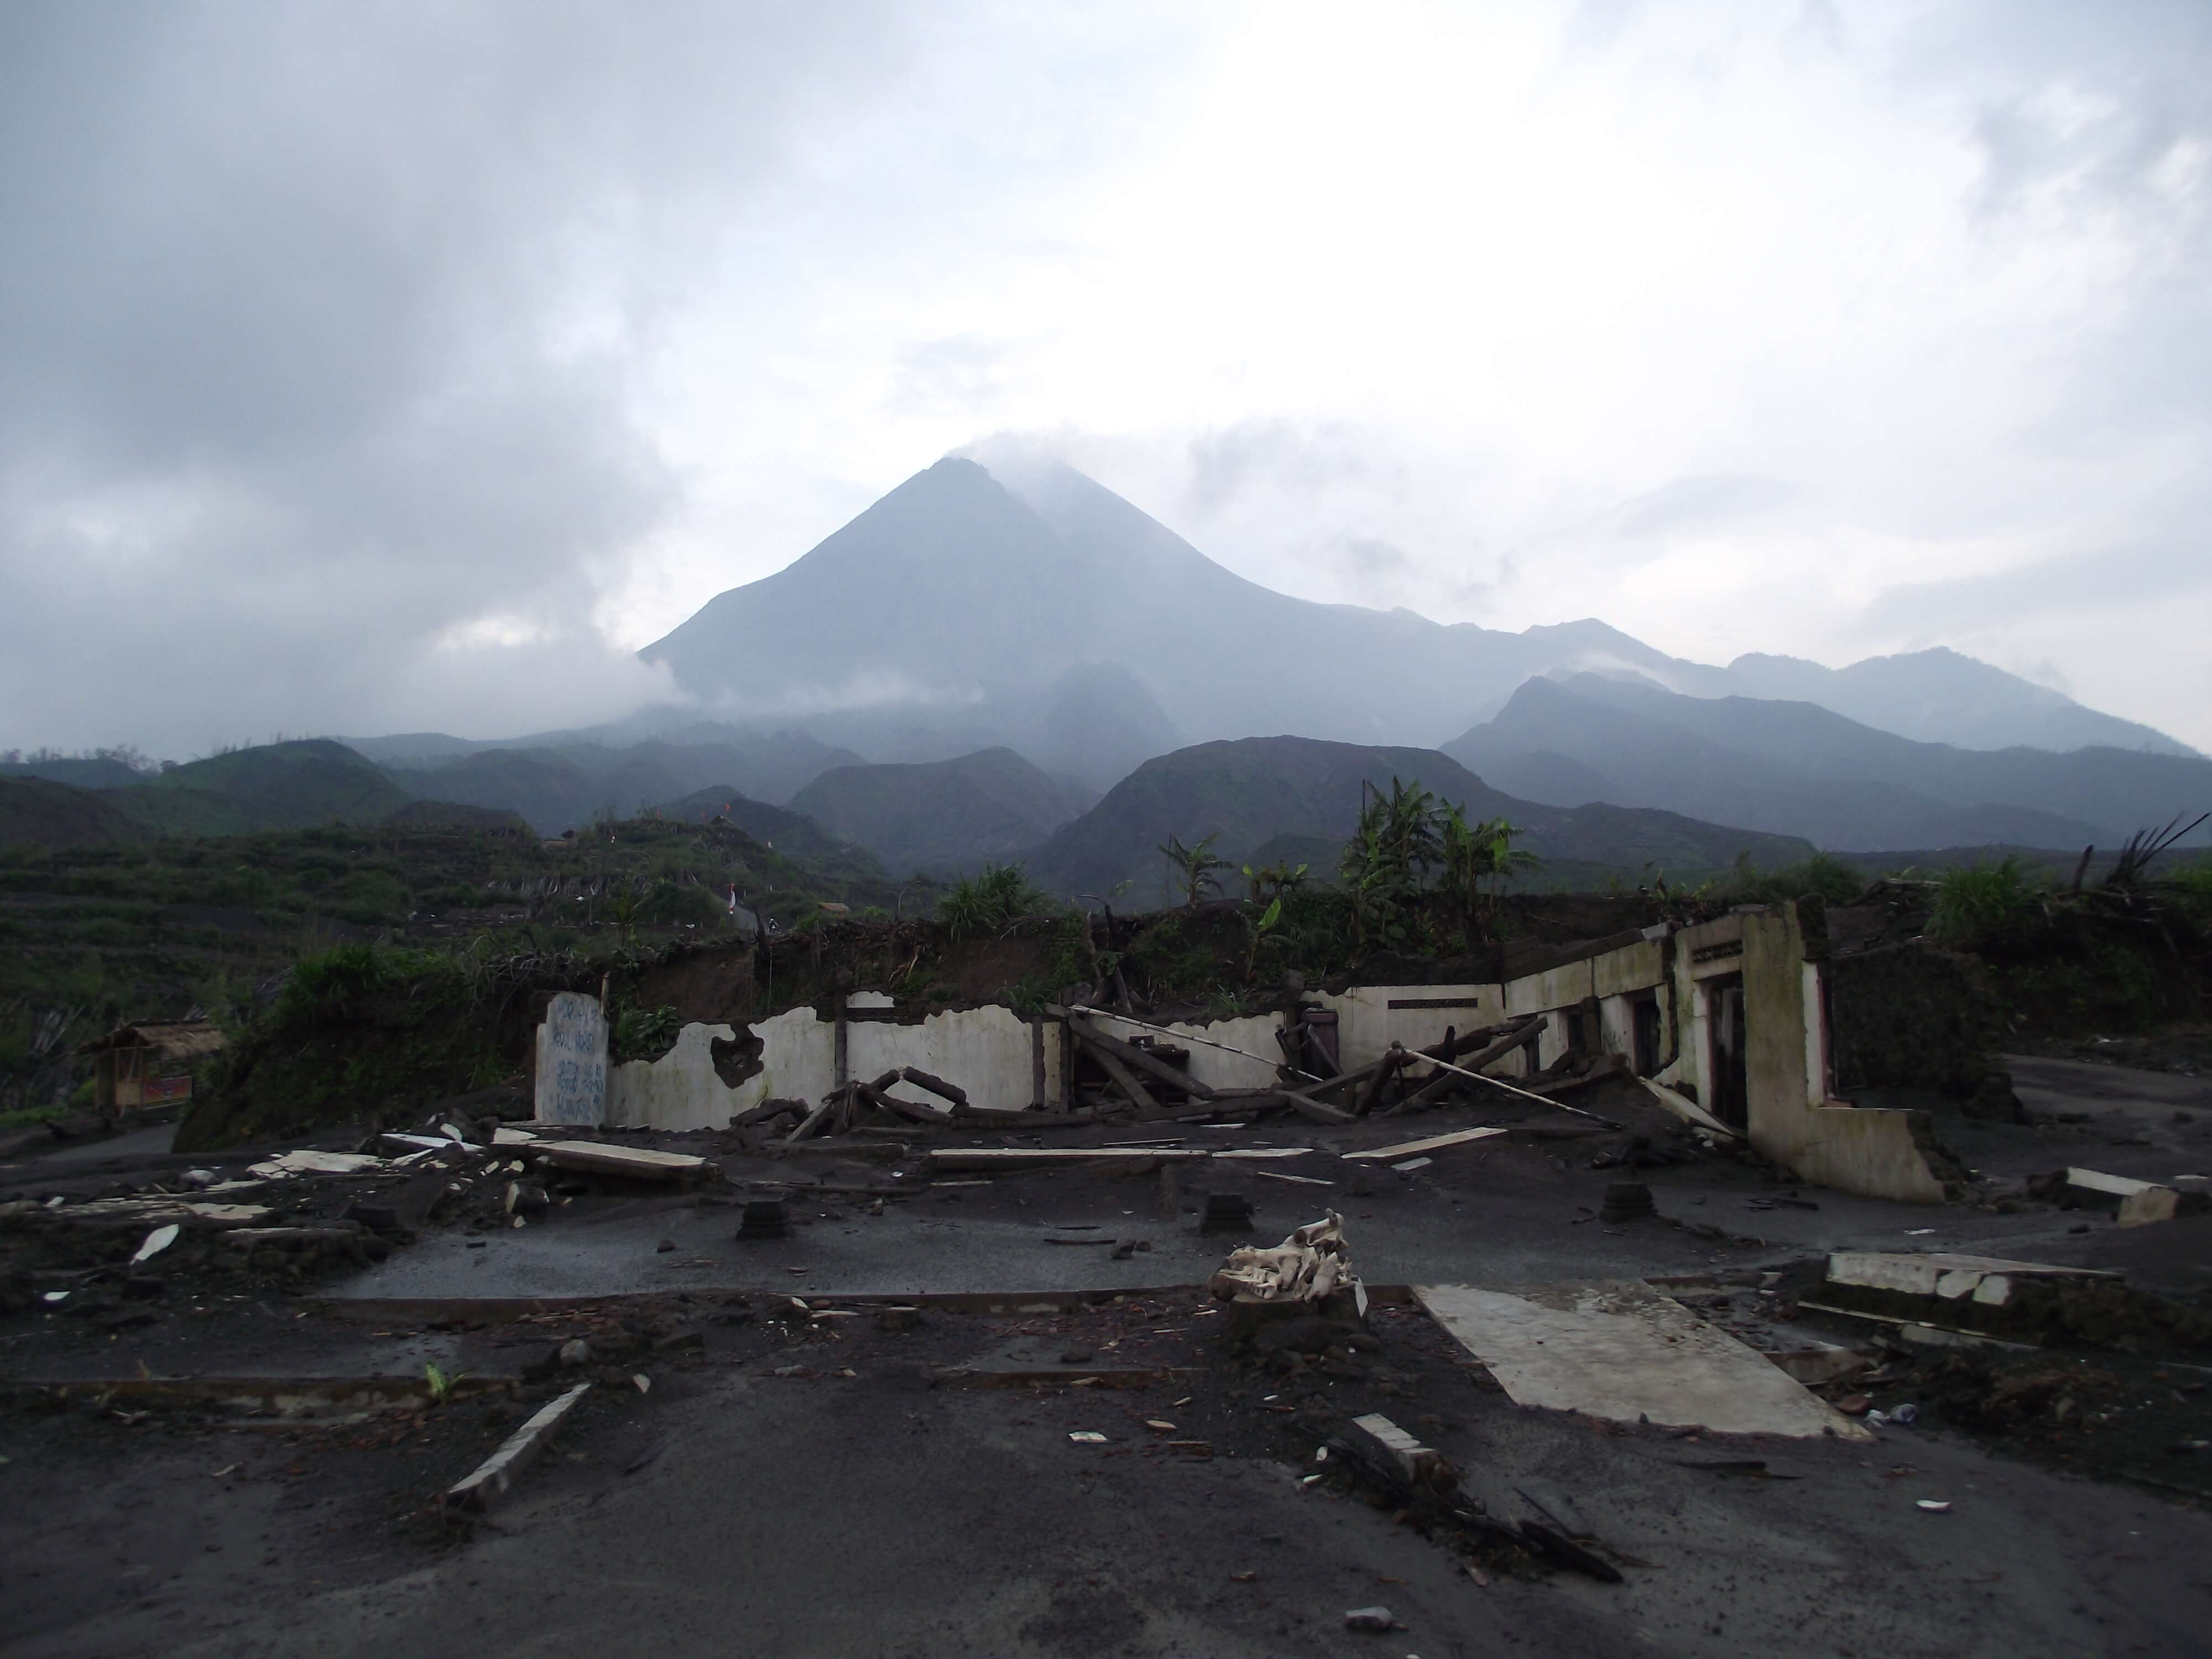 Kinahrejo village was destroyed by pyroclastic surges on 26 October 2010, killing more then 30 people. Photo taken in Feb. 2011 (K. Preece)